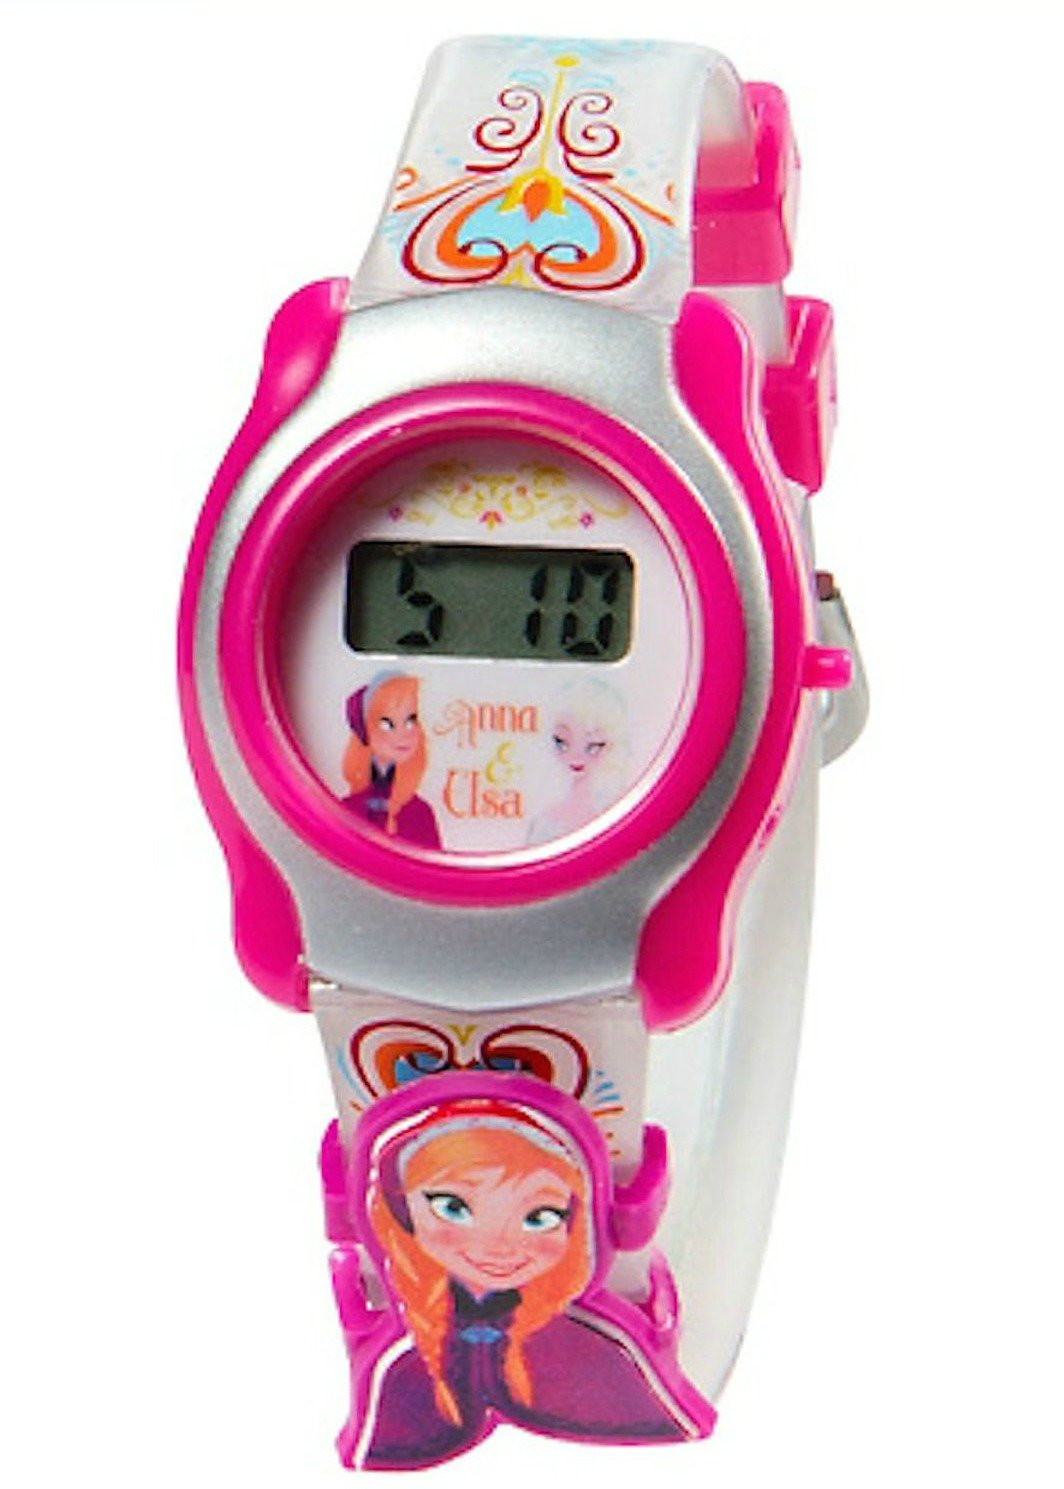 Disney Frozen with Slide-On Characters LCD Watch